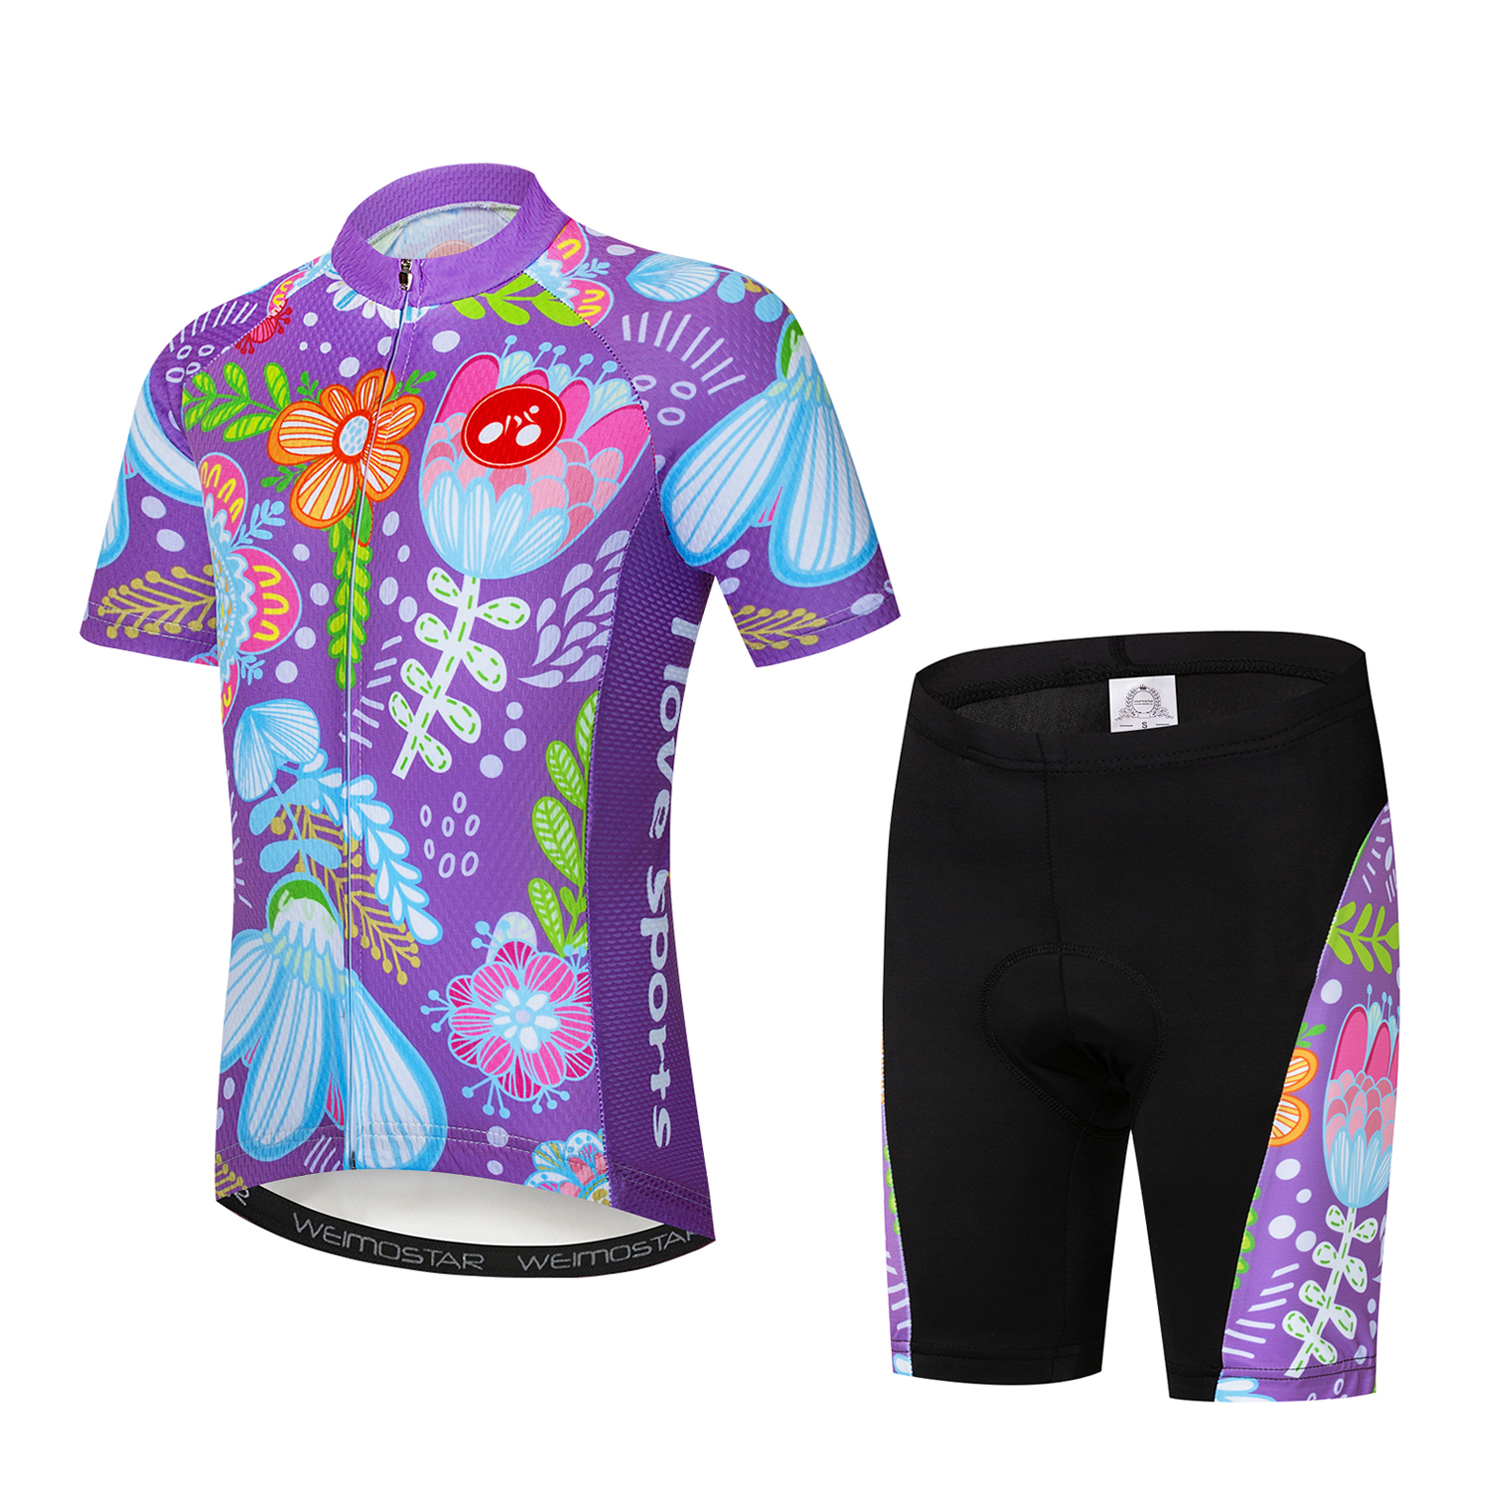 Greece Hellas Short Sleeve Cycling Jersey Free Shipping